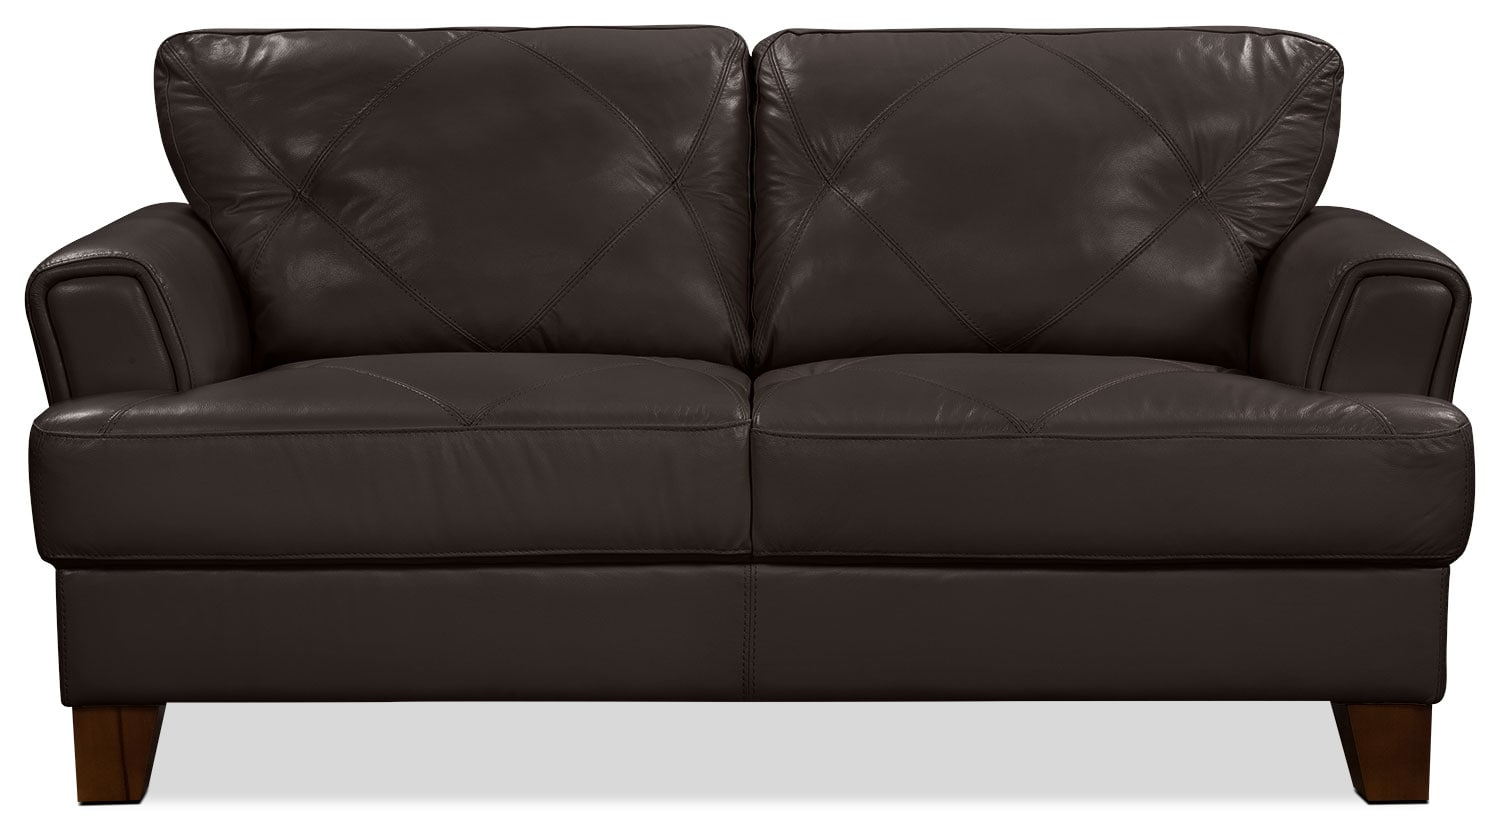 Vita 100 genuine leather sofa chocolate the brick for Sectional sofas 100 leather